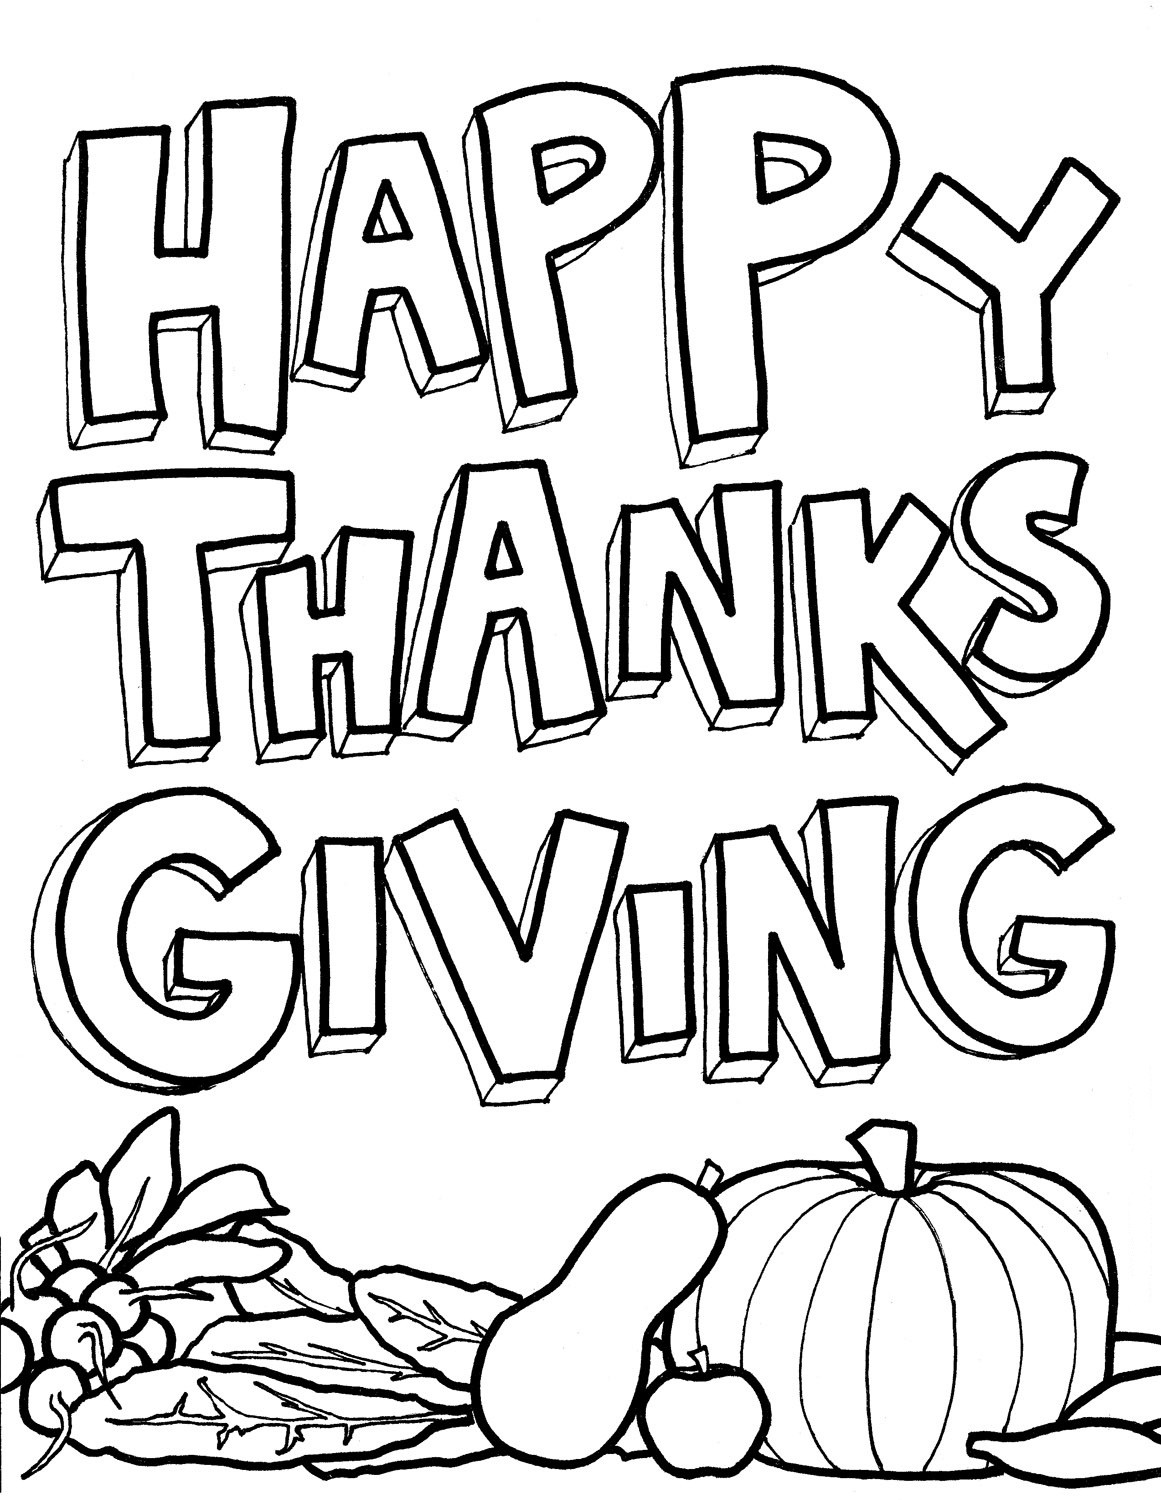 Happy Thanksgiving Coloring Pages For Boys  Thanksgiving Day Coloring Pages for childrens printable